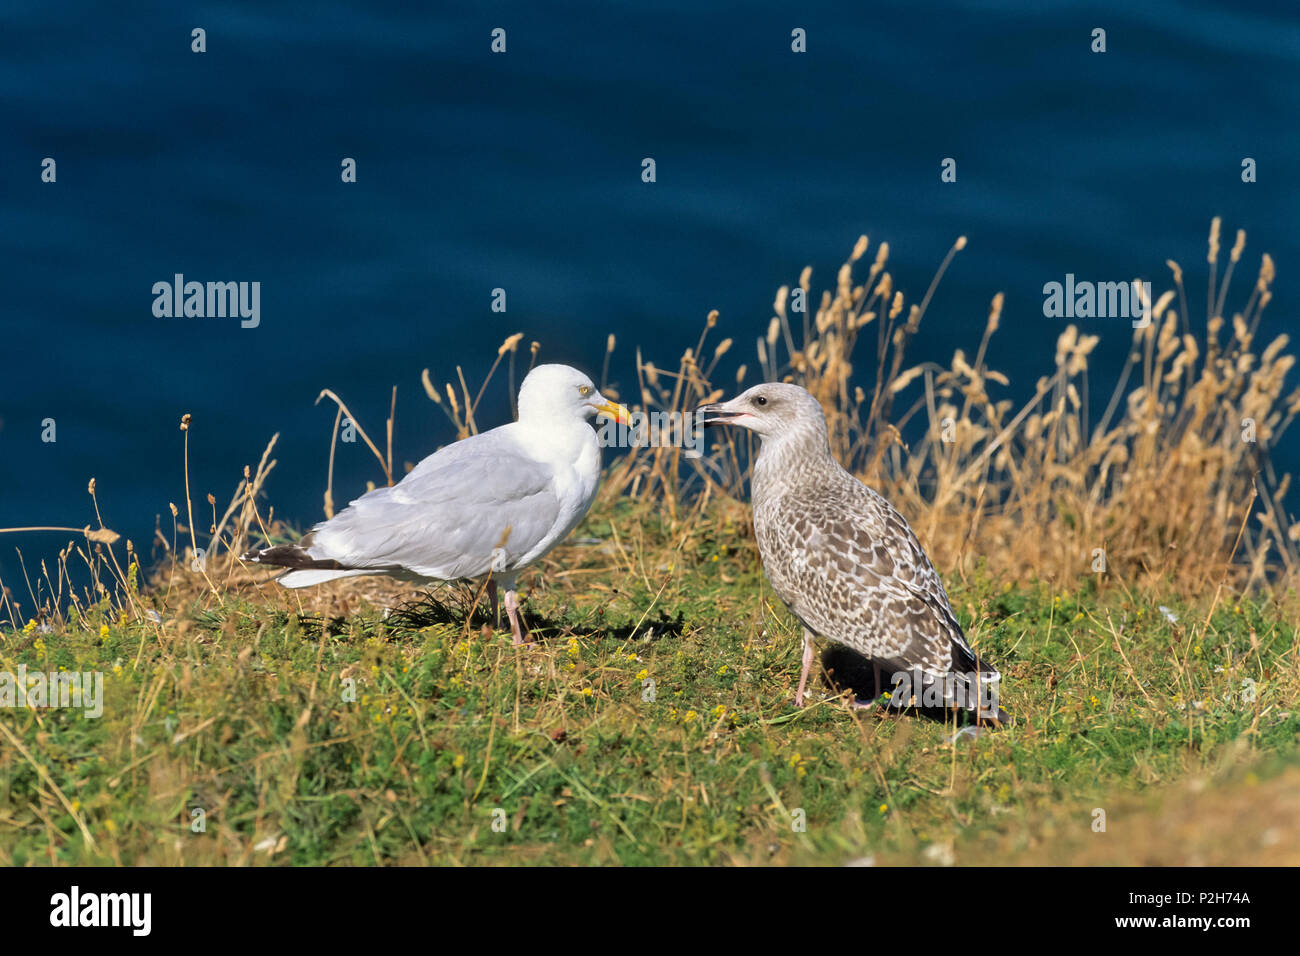 Herring Gull with young, Larus argentatus, North Sea, Germany - Stock Image